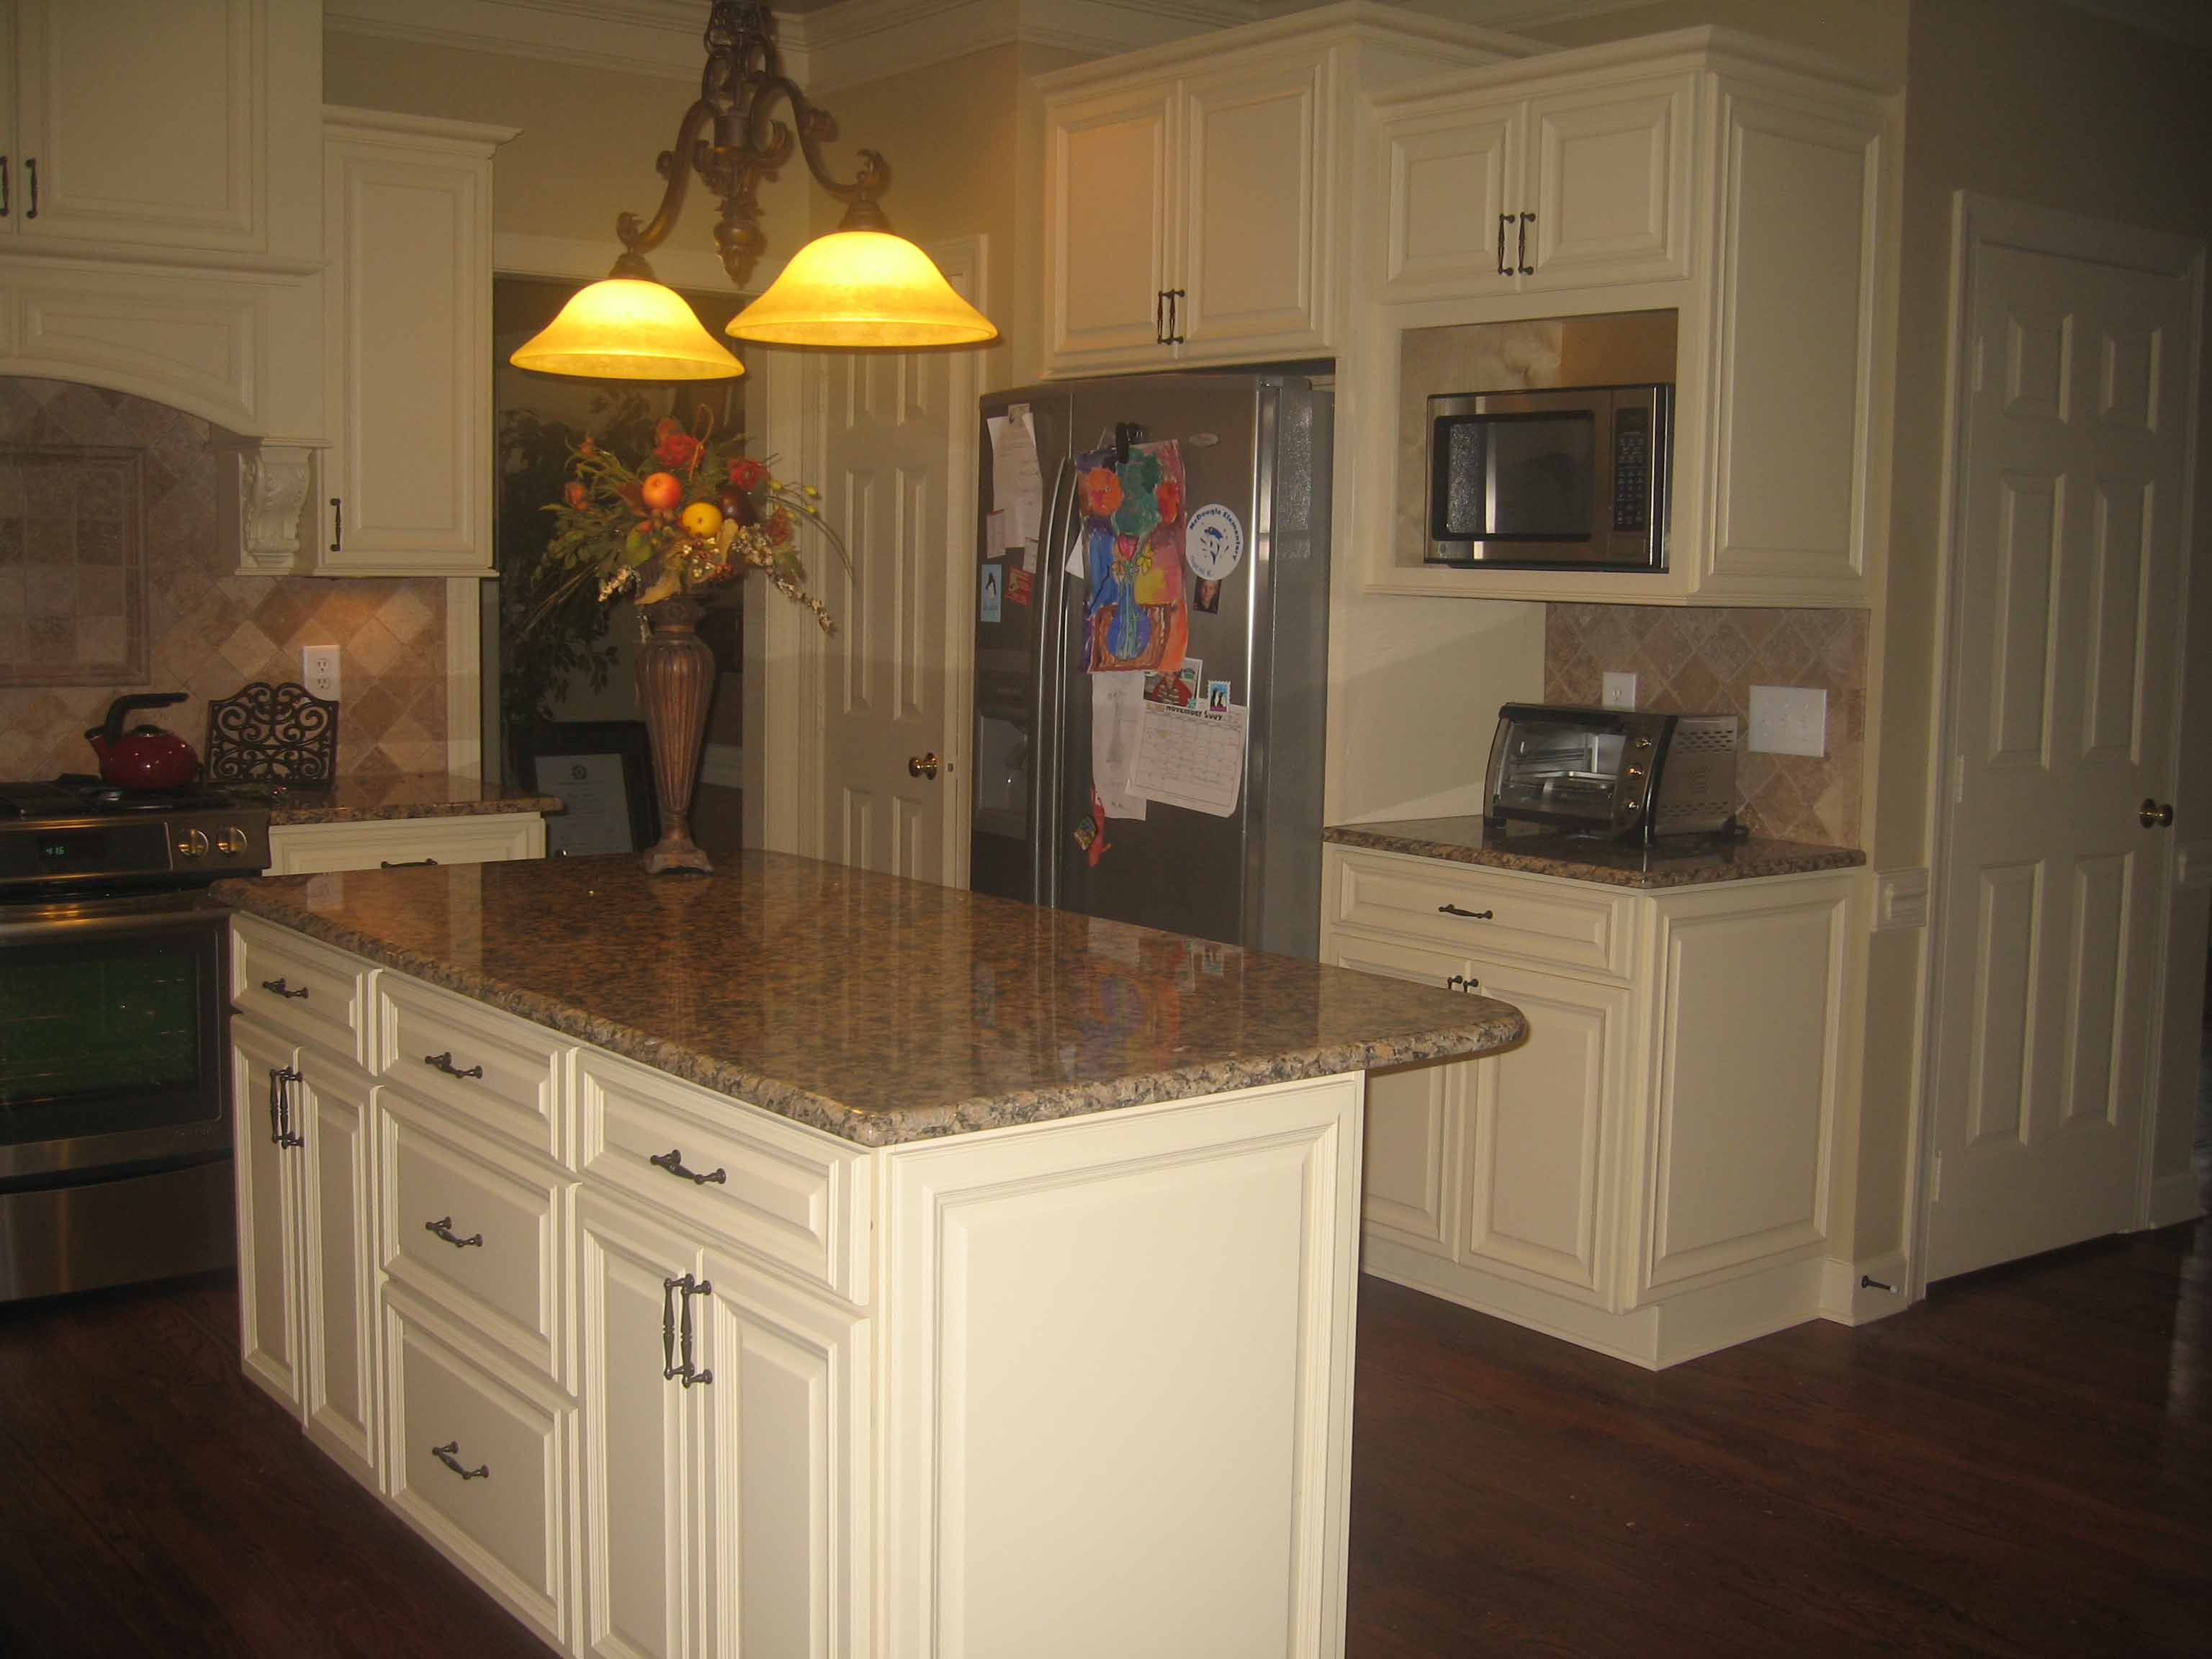 Rta White Kitchen Cabinets Rta French Vanilla Kitchen Cabinets French Vanilla Deluxe Raised